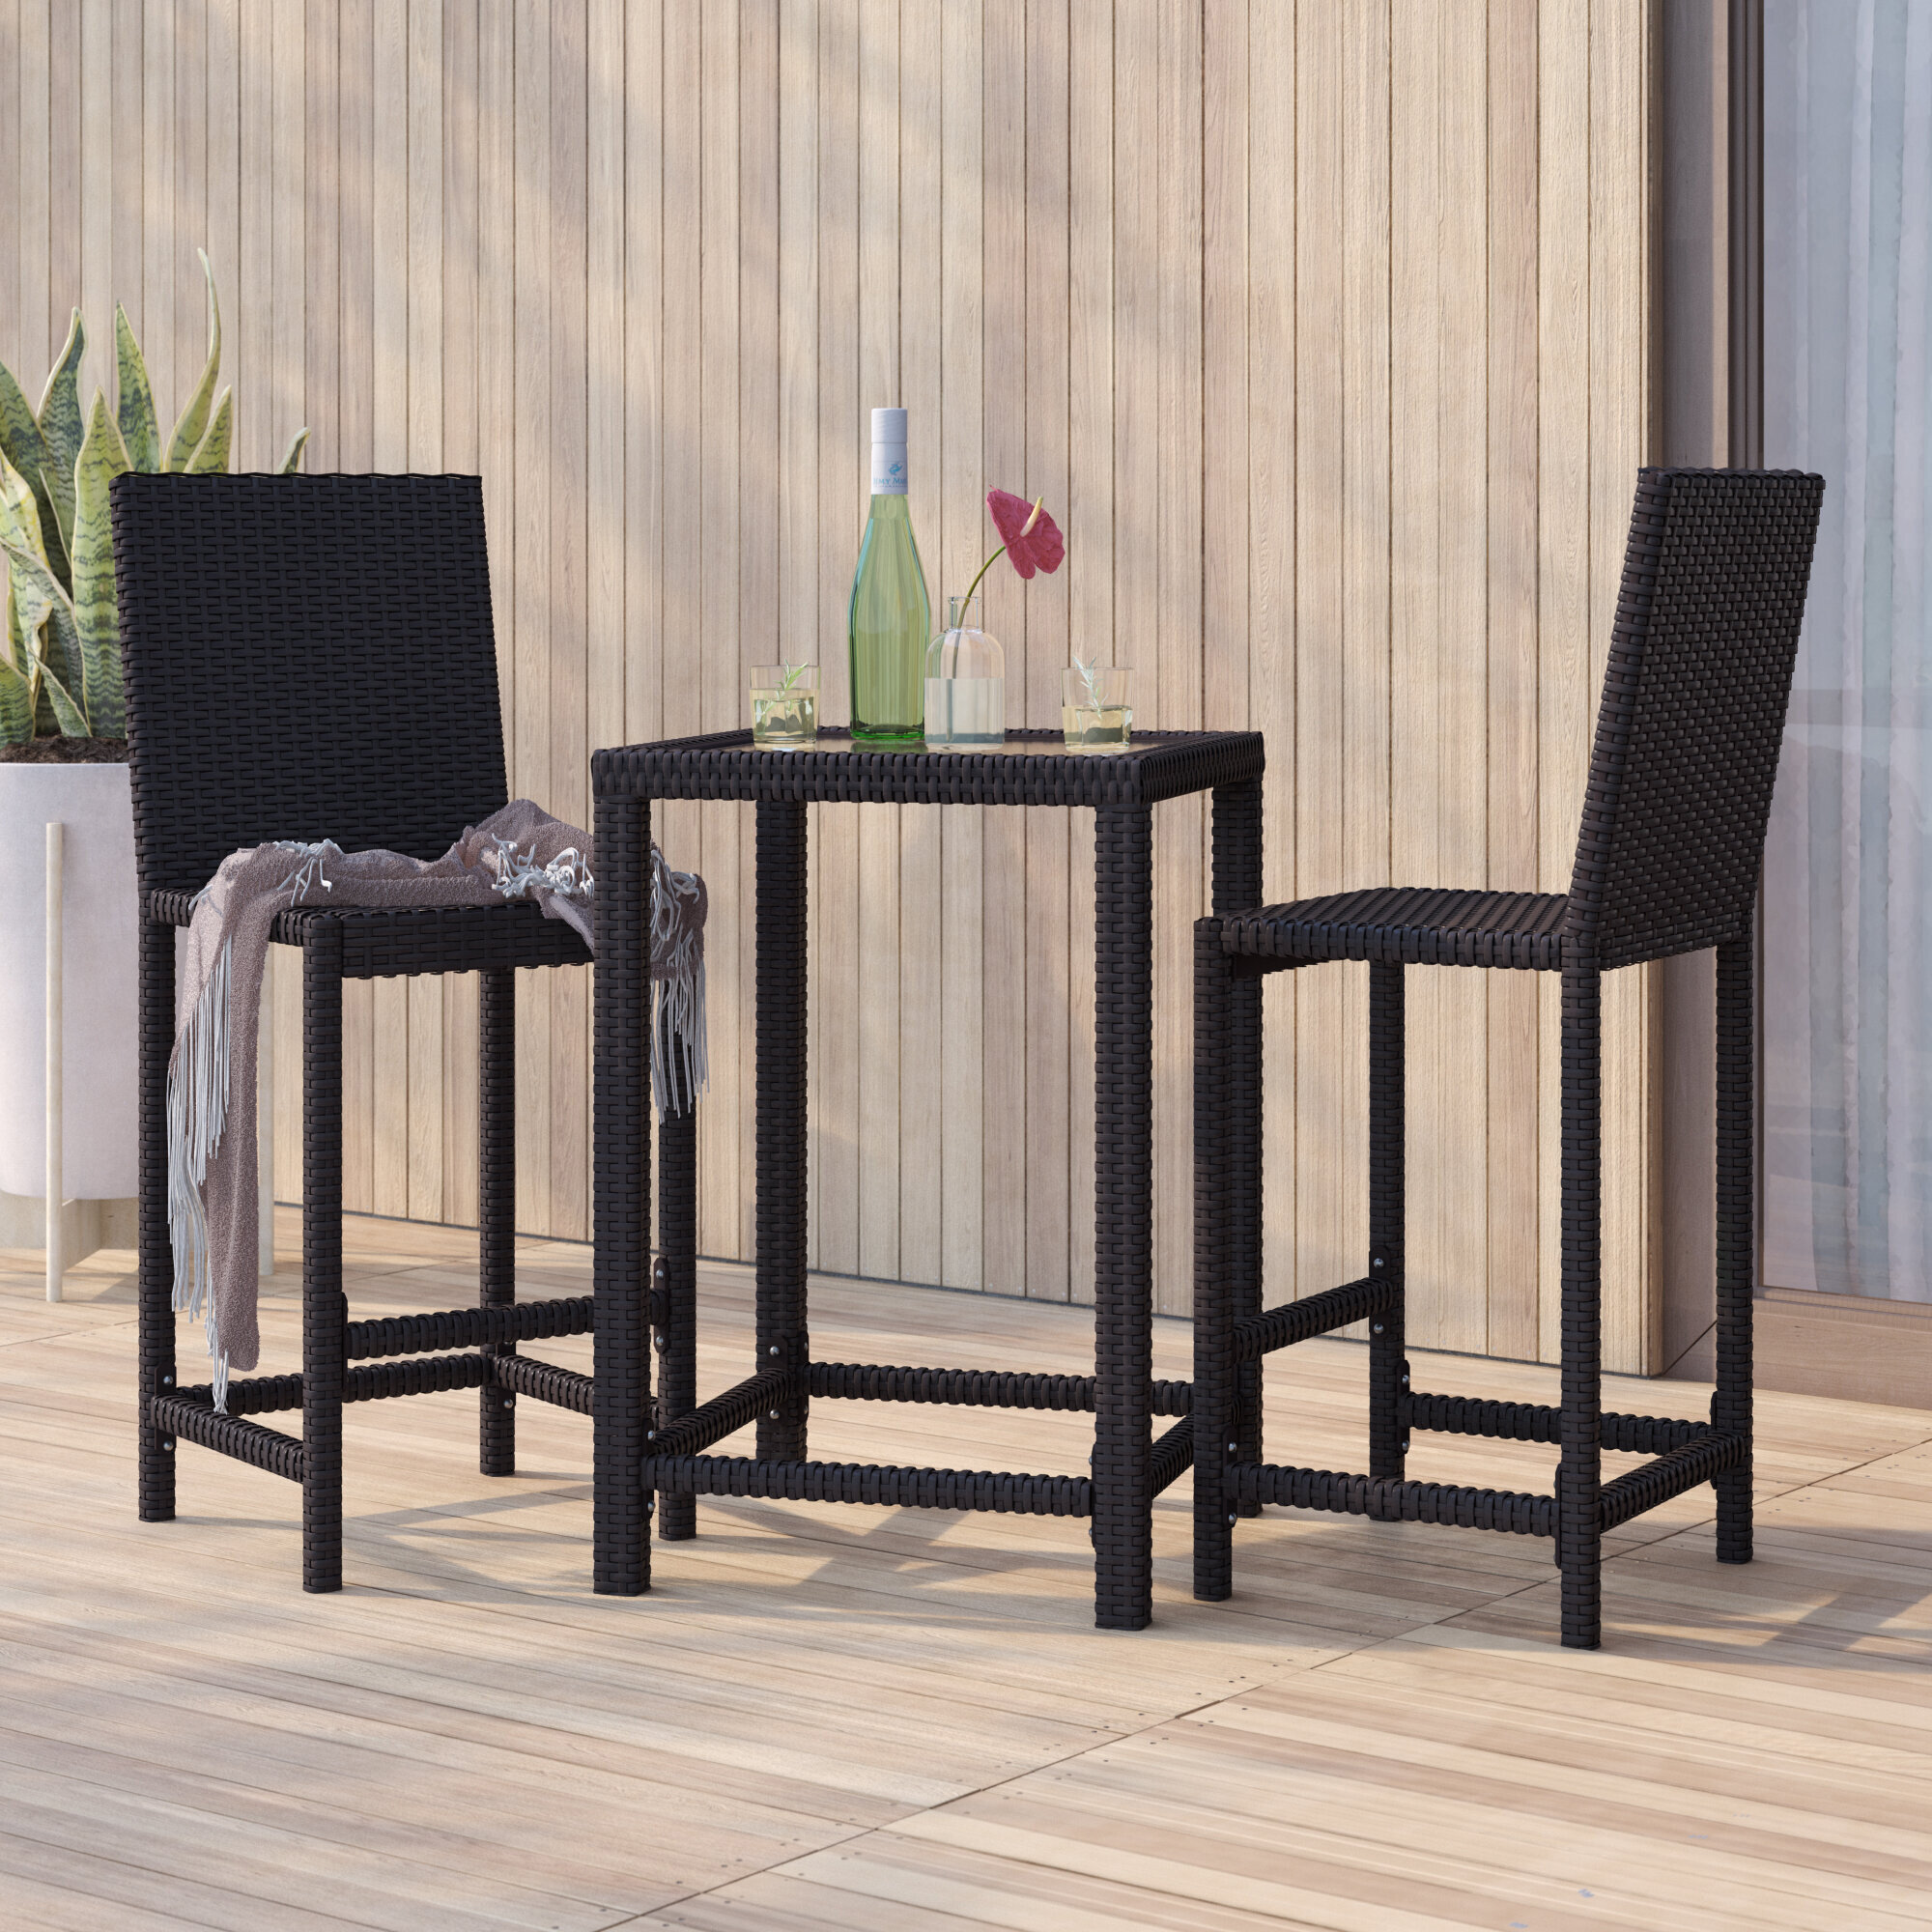 Superieur Corlane 3 Piece Bar Height Dining Set